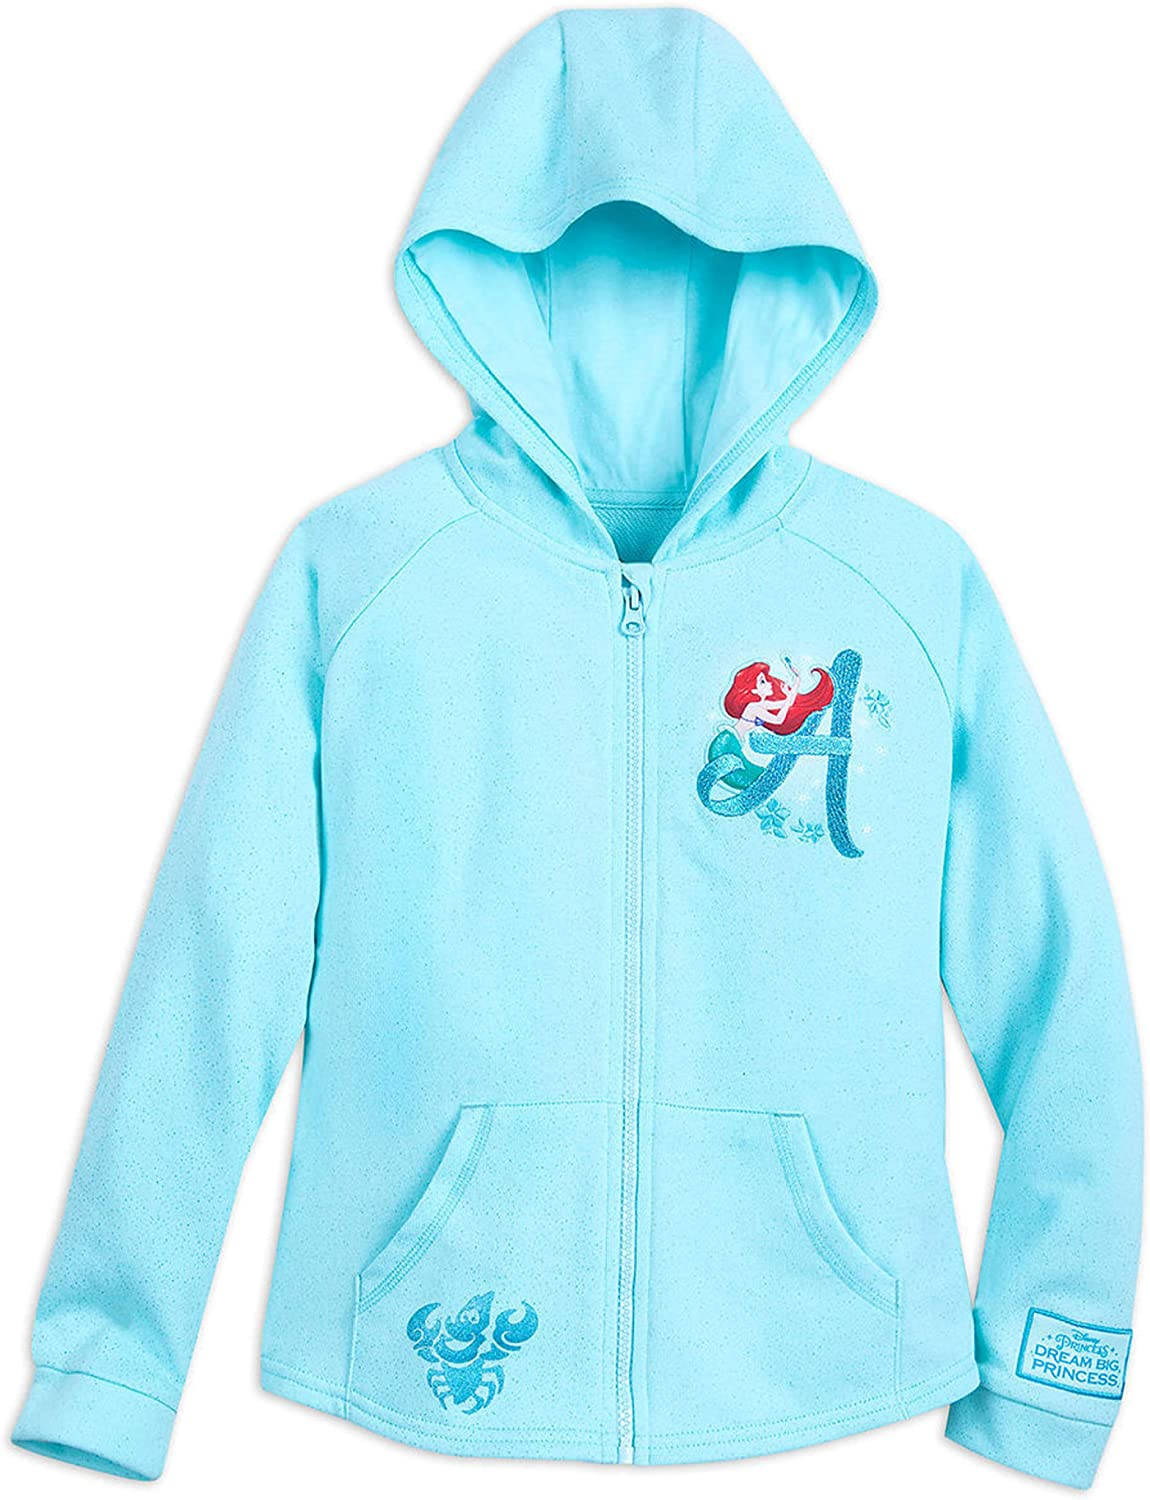 Disney Girls National products Zip Hoodie - Ariel Land Max 77% OFF Fantasy Blue Castle with